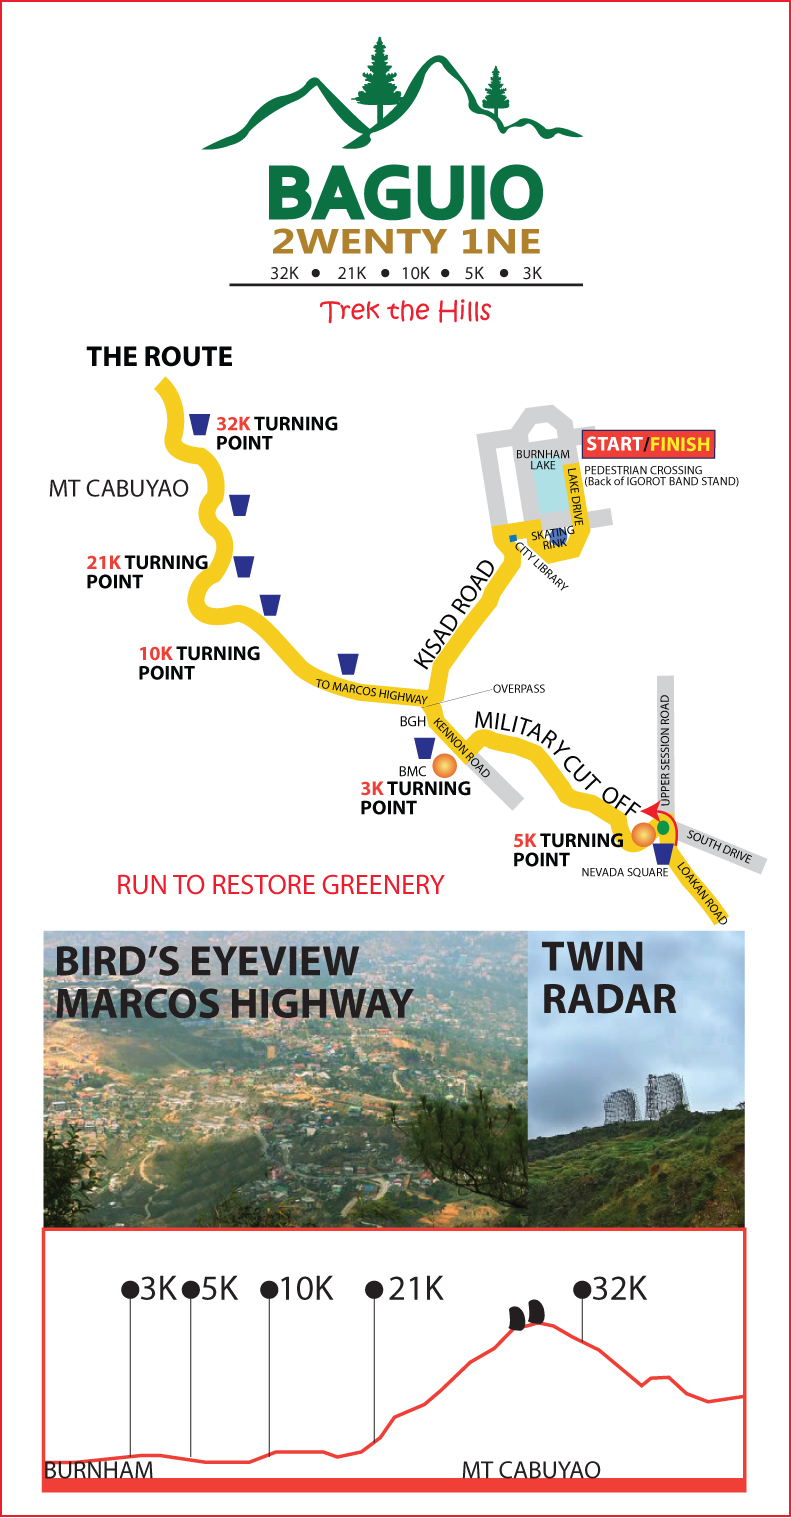 baguio-2wenty-1ne-2013-route-map